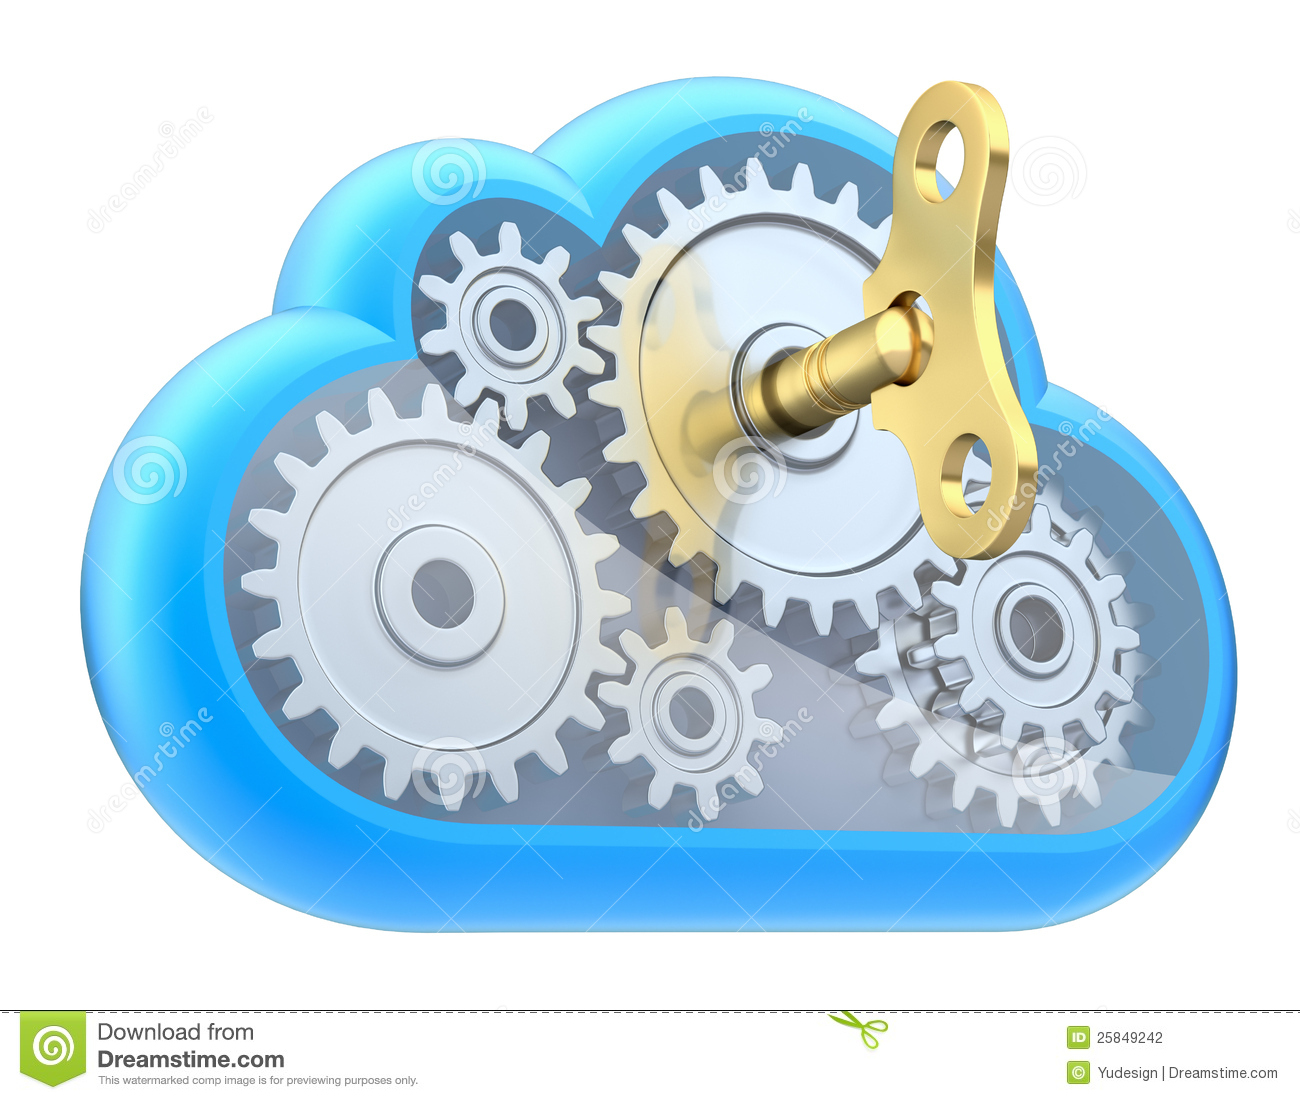 essay on use cloud computing in communication